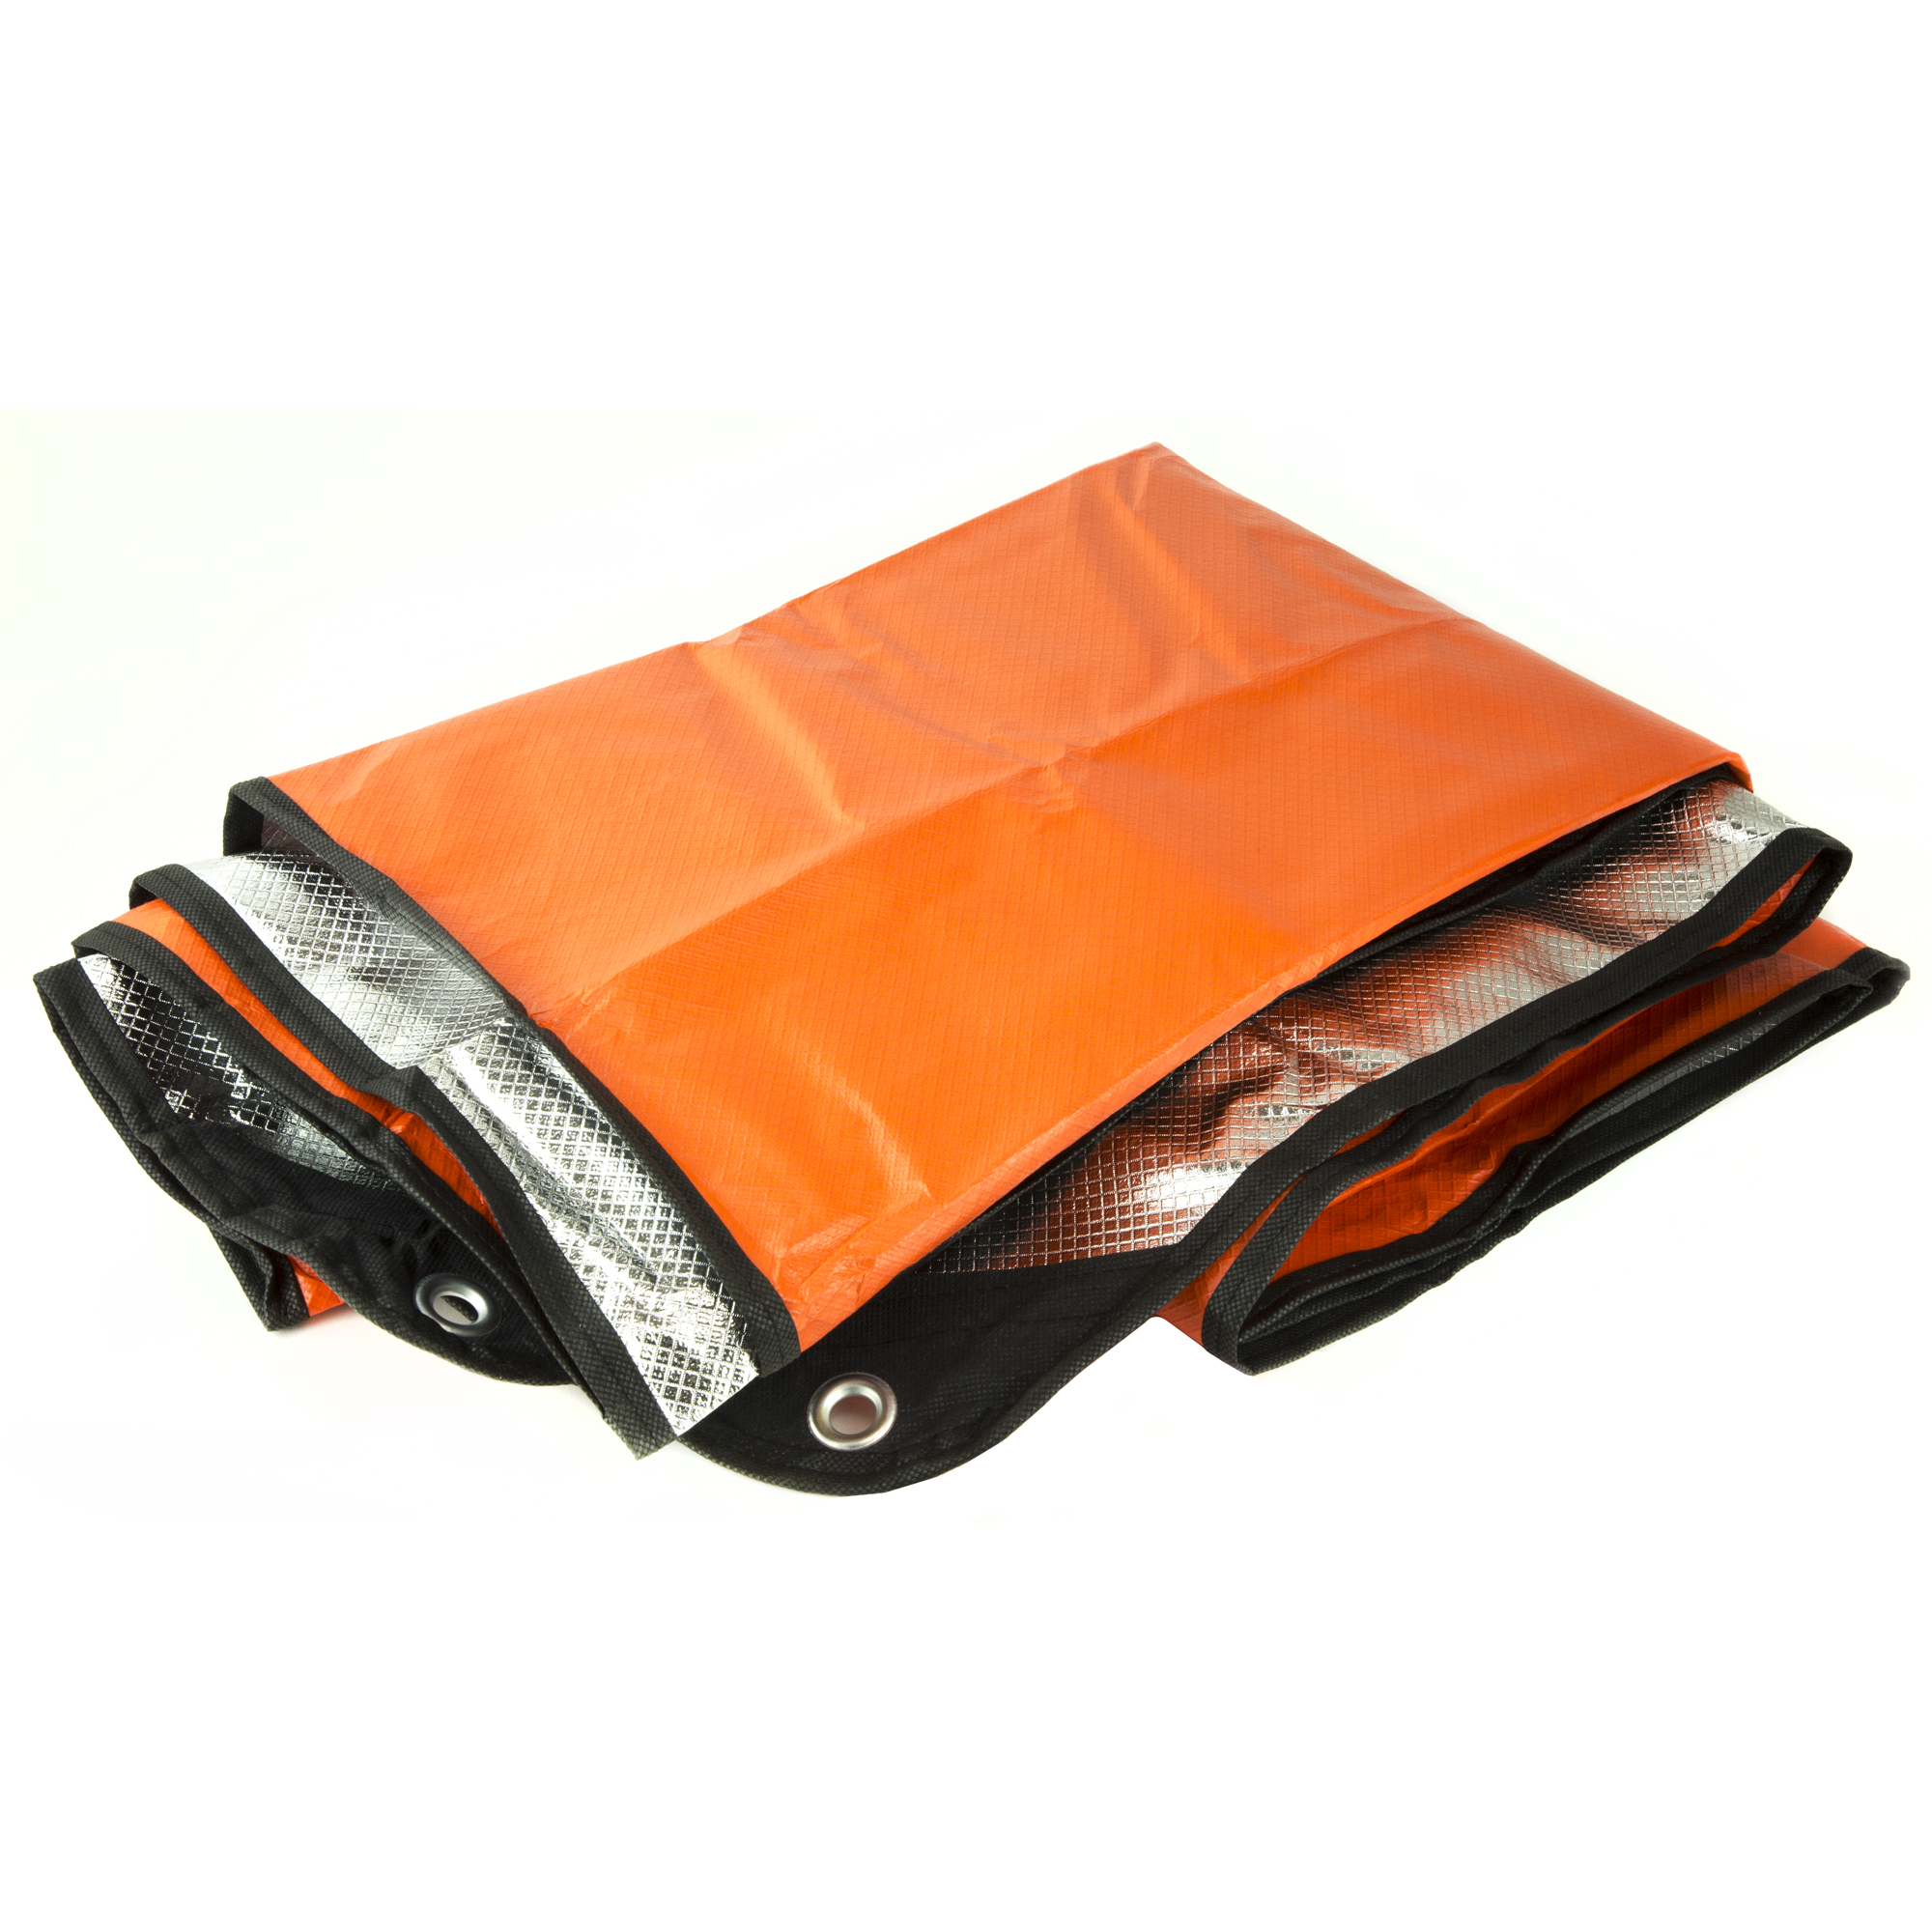 Ultimate Survival Technologies Survival Blanket 2.0, Polyethylene/reinforced fabric/metalized polyester, Orange and Silver Reflective